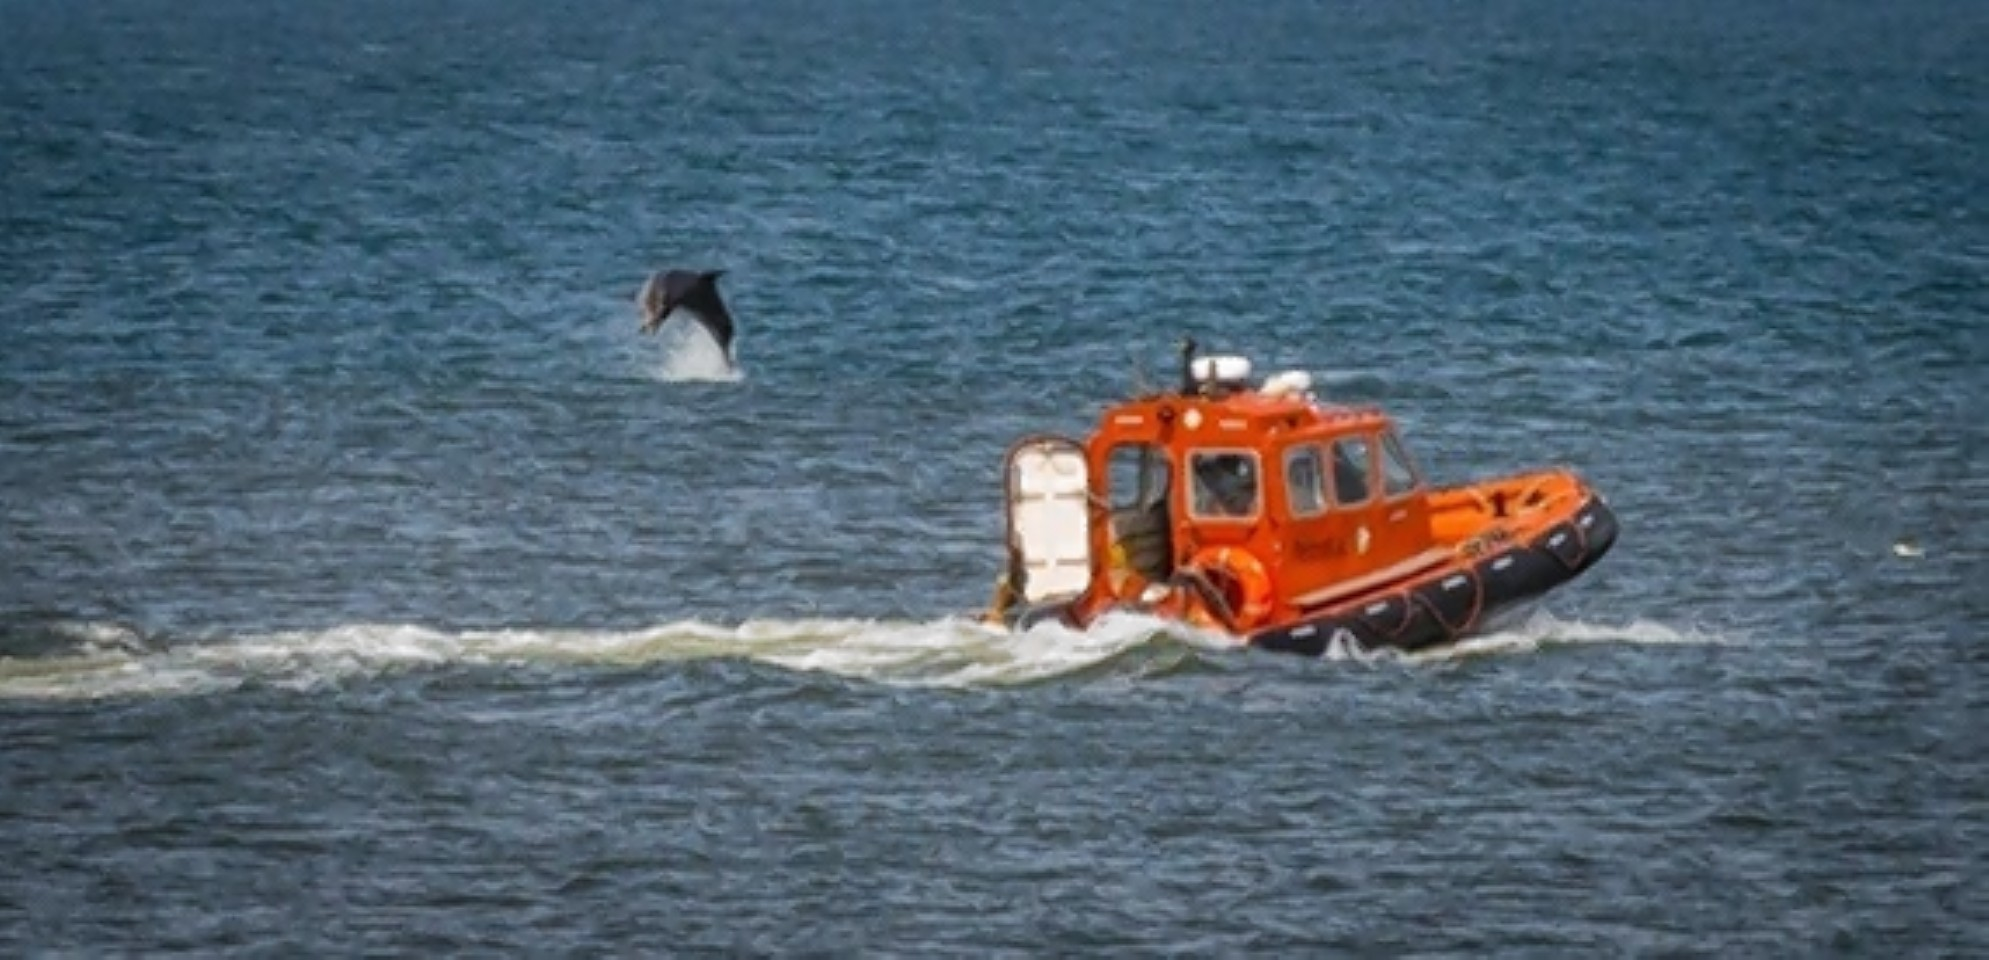 The alert comes as Aberdeen-based North Star Shipping denied claims its vessels were spotted harassing dolphins. Picture by Jeannette Baxendale